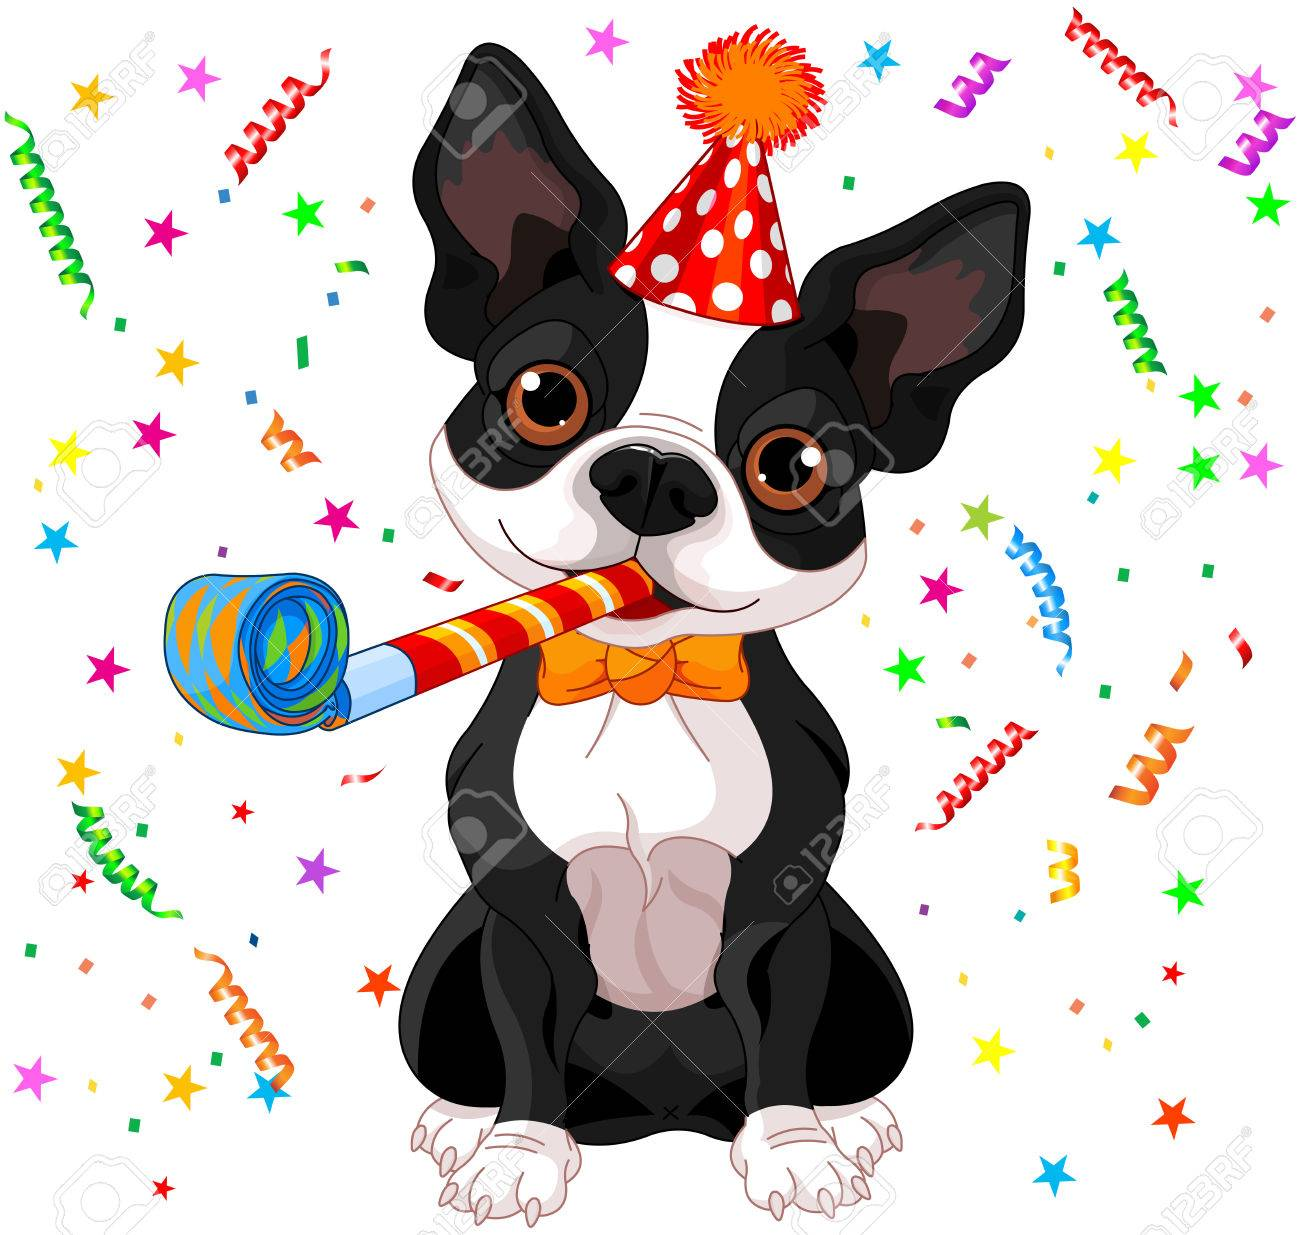 Chien trouvé: mon expérience 35588778-illustration-of-cute-boston-terrier-celebrating